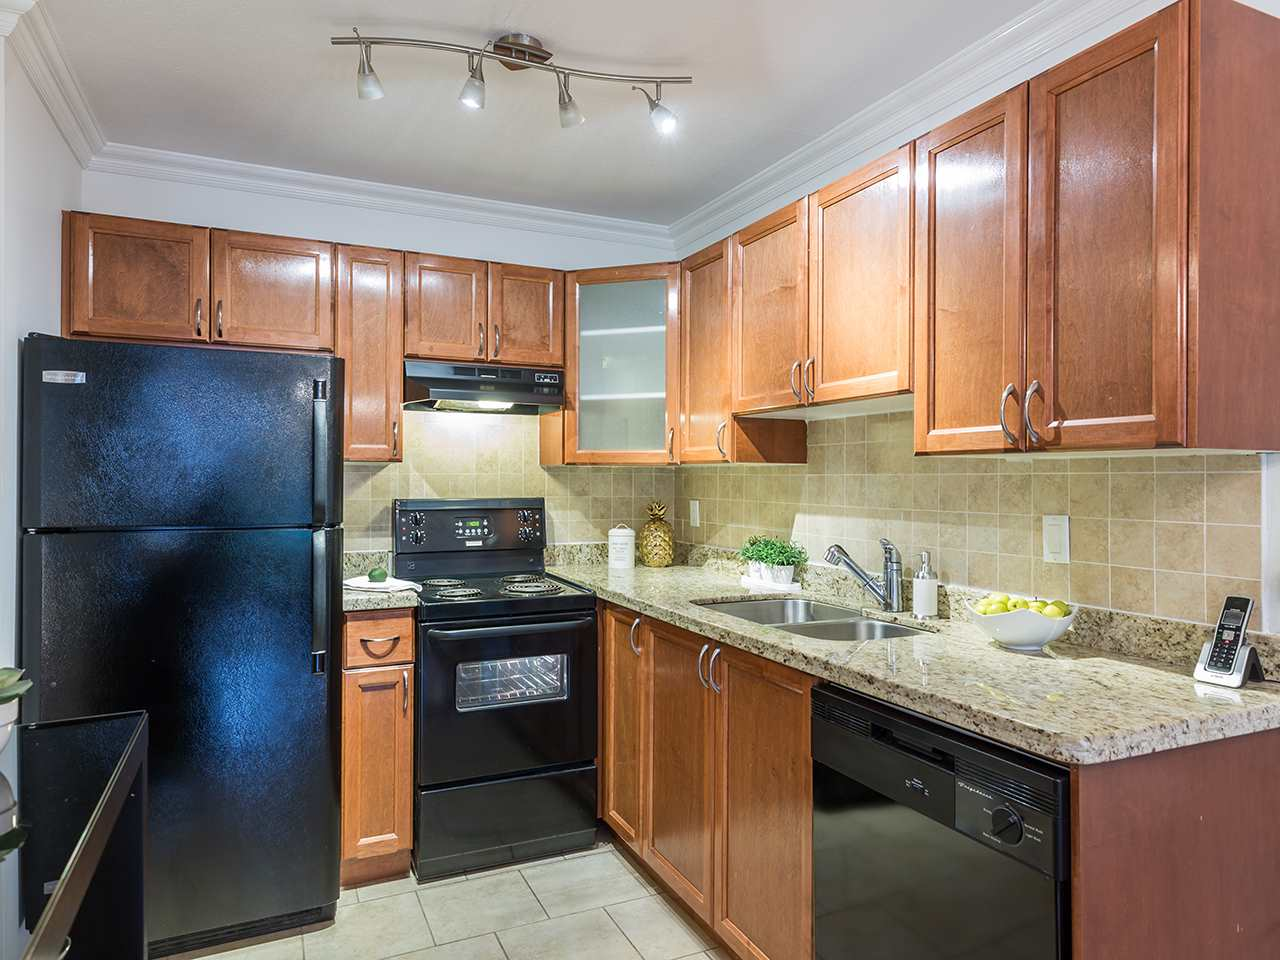 Condo Apartment at 219 1550 BARCLAY STREET, Unit 219, Vancouver West, British Columbia. Image 5